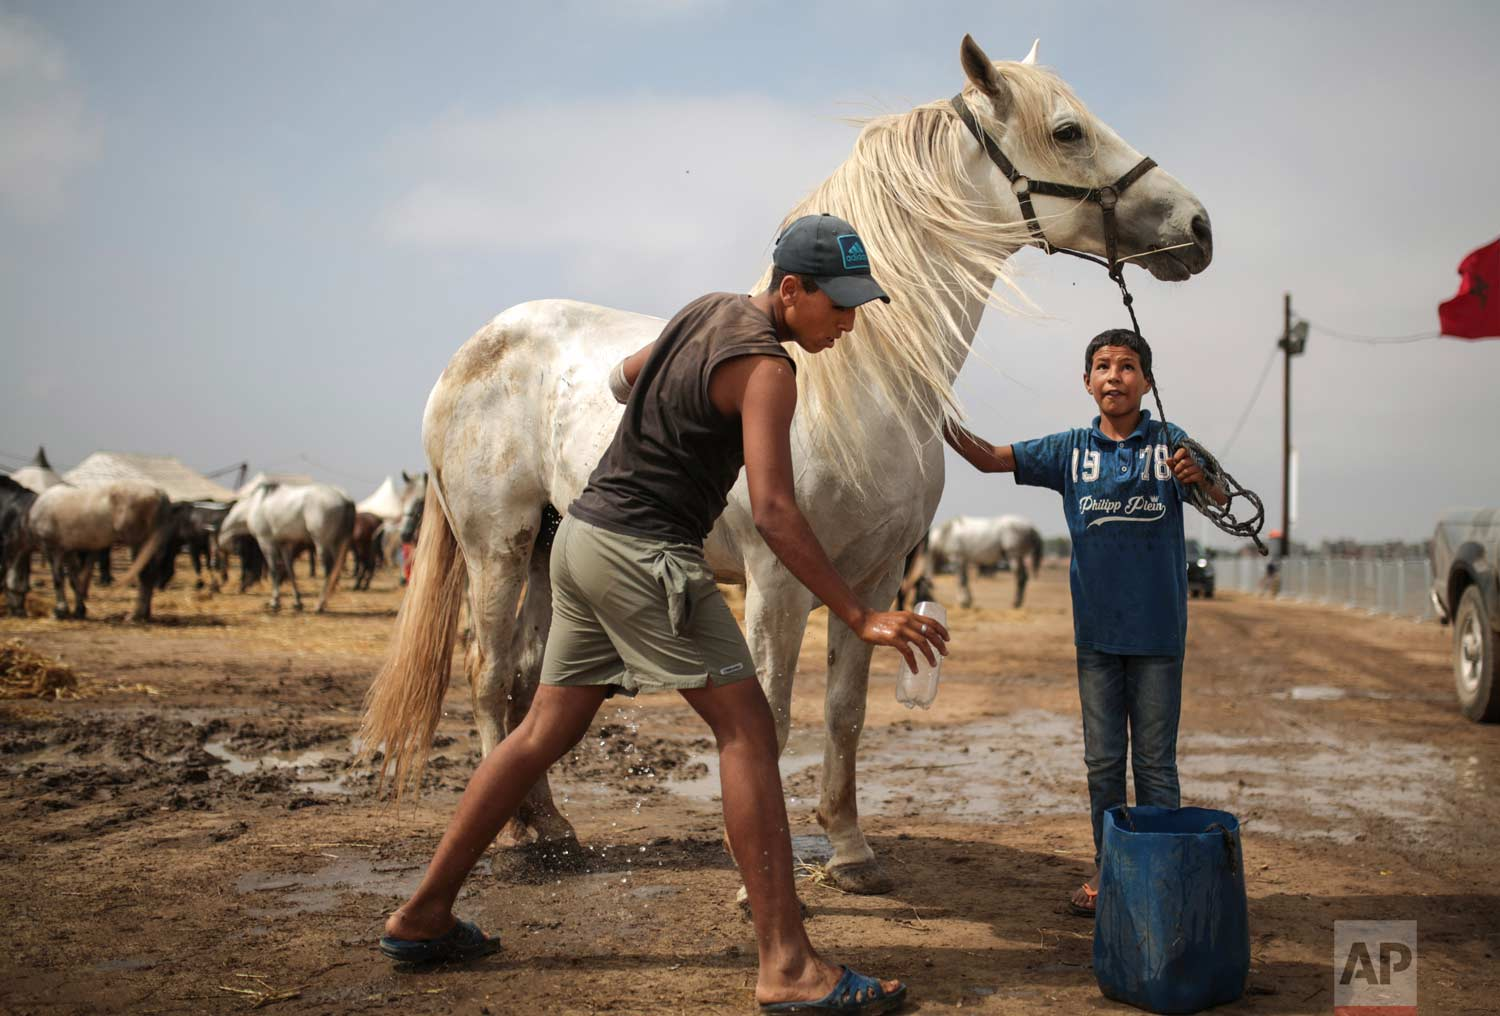 In this Thursday, Aug. 17, 2017 photo, kids wash their horses as they are prepared for Tabourida, a traditional horse riding show also known as Fantasia, in Mansouria, near Casablanca, Morocco. (AP Photo/Mosa'ab Elshamy)